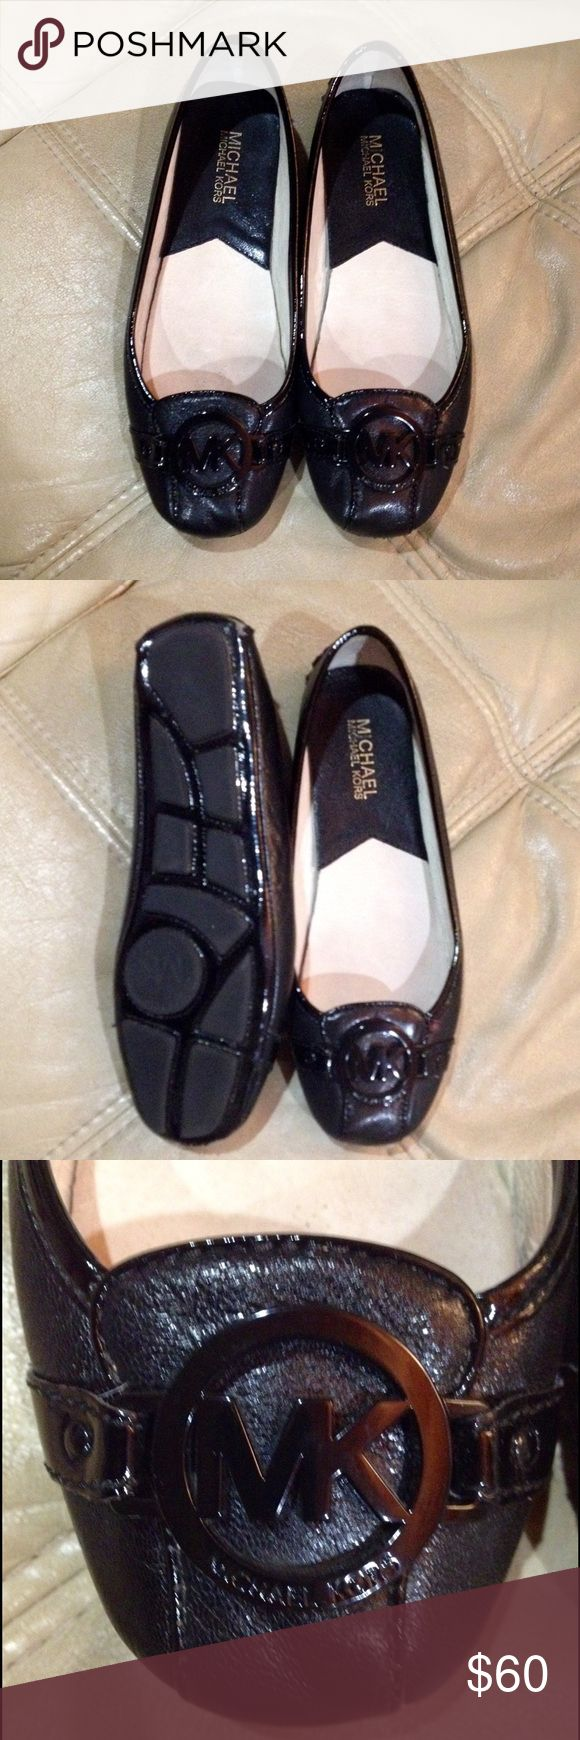 Michael Michael Kors Black Leather Flats Shoes Very good condition. Minimal signs of wear. Leather upper. MICHAEL Michael Kors Shoes Flats & Loafers